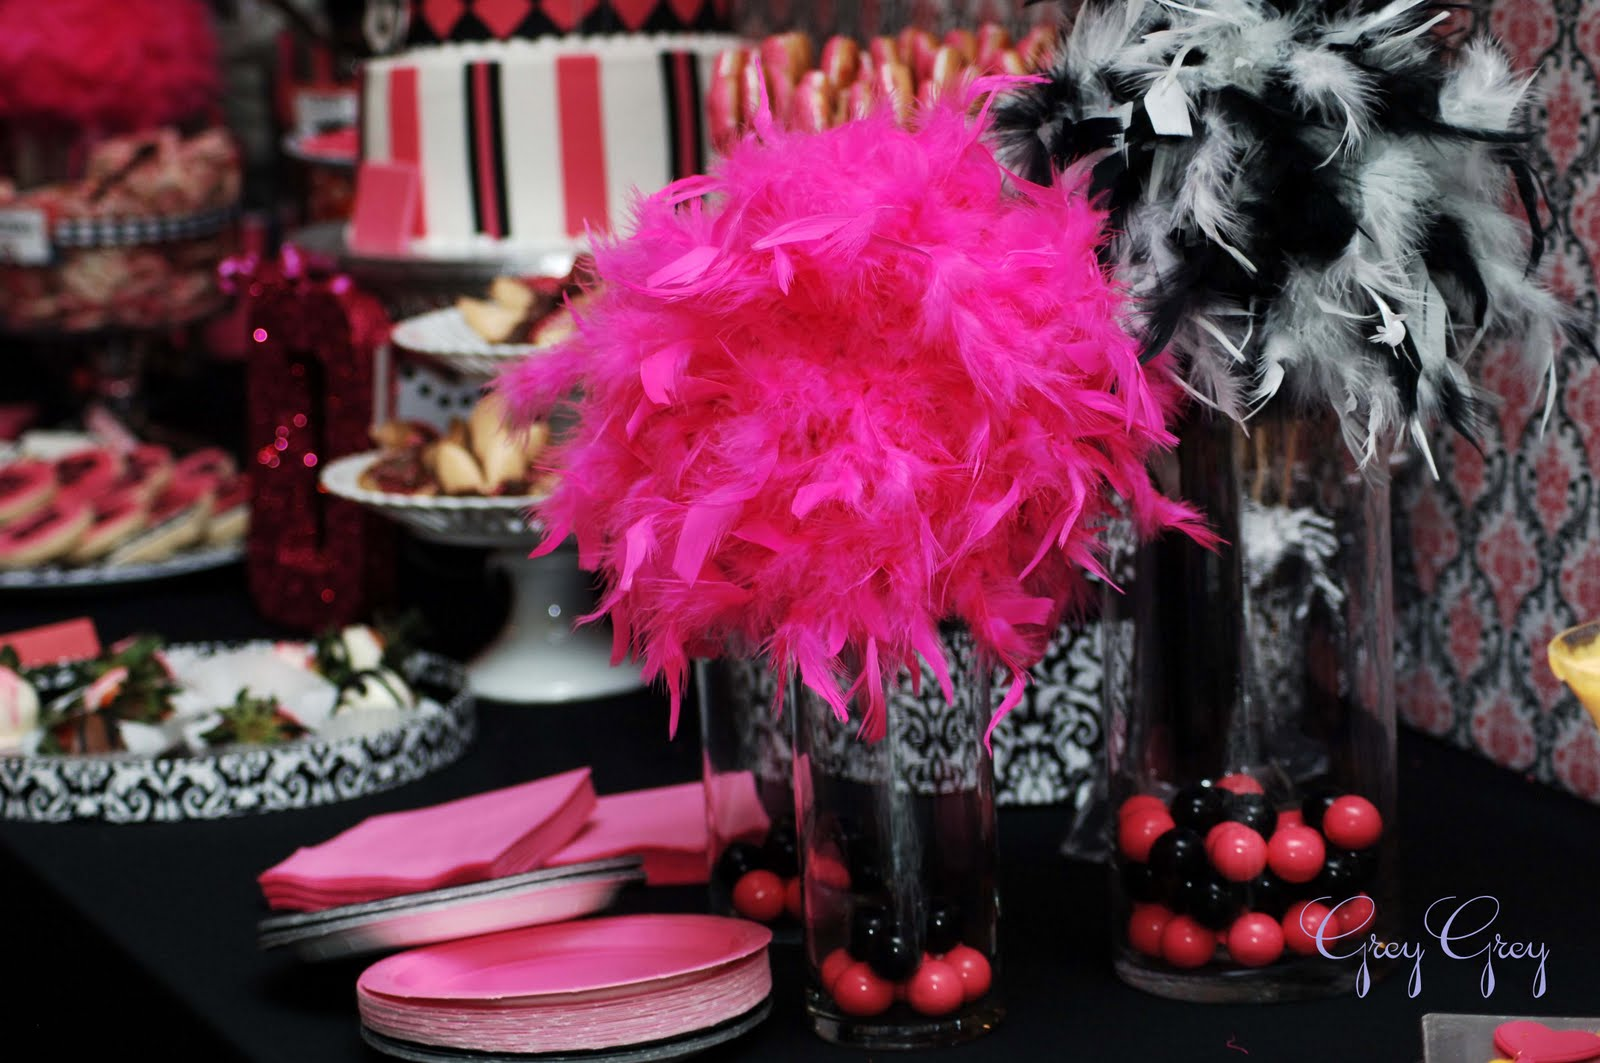 The Table Was A Vision In Hot Pink Black Damask And Glitter